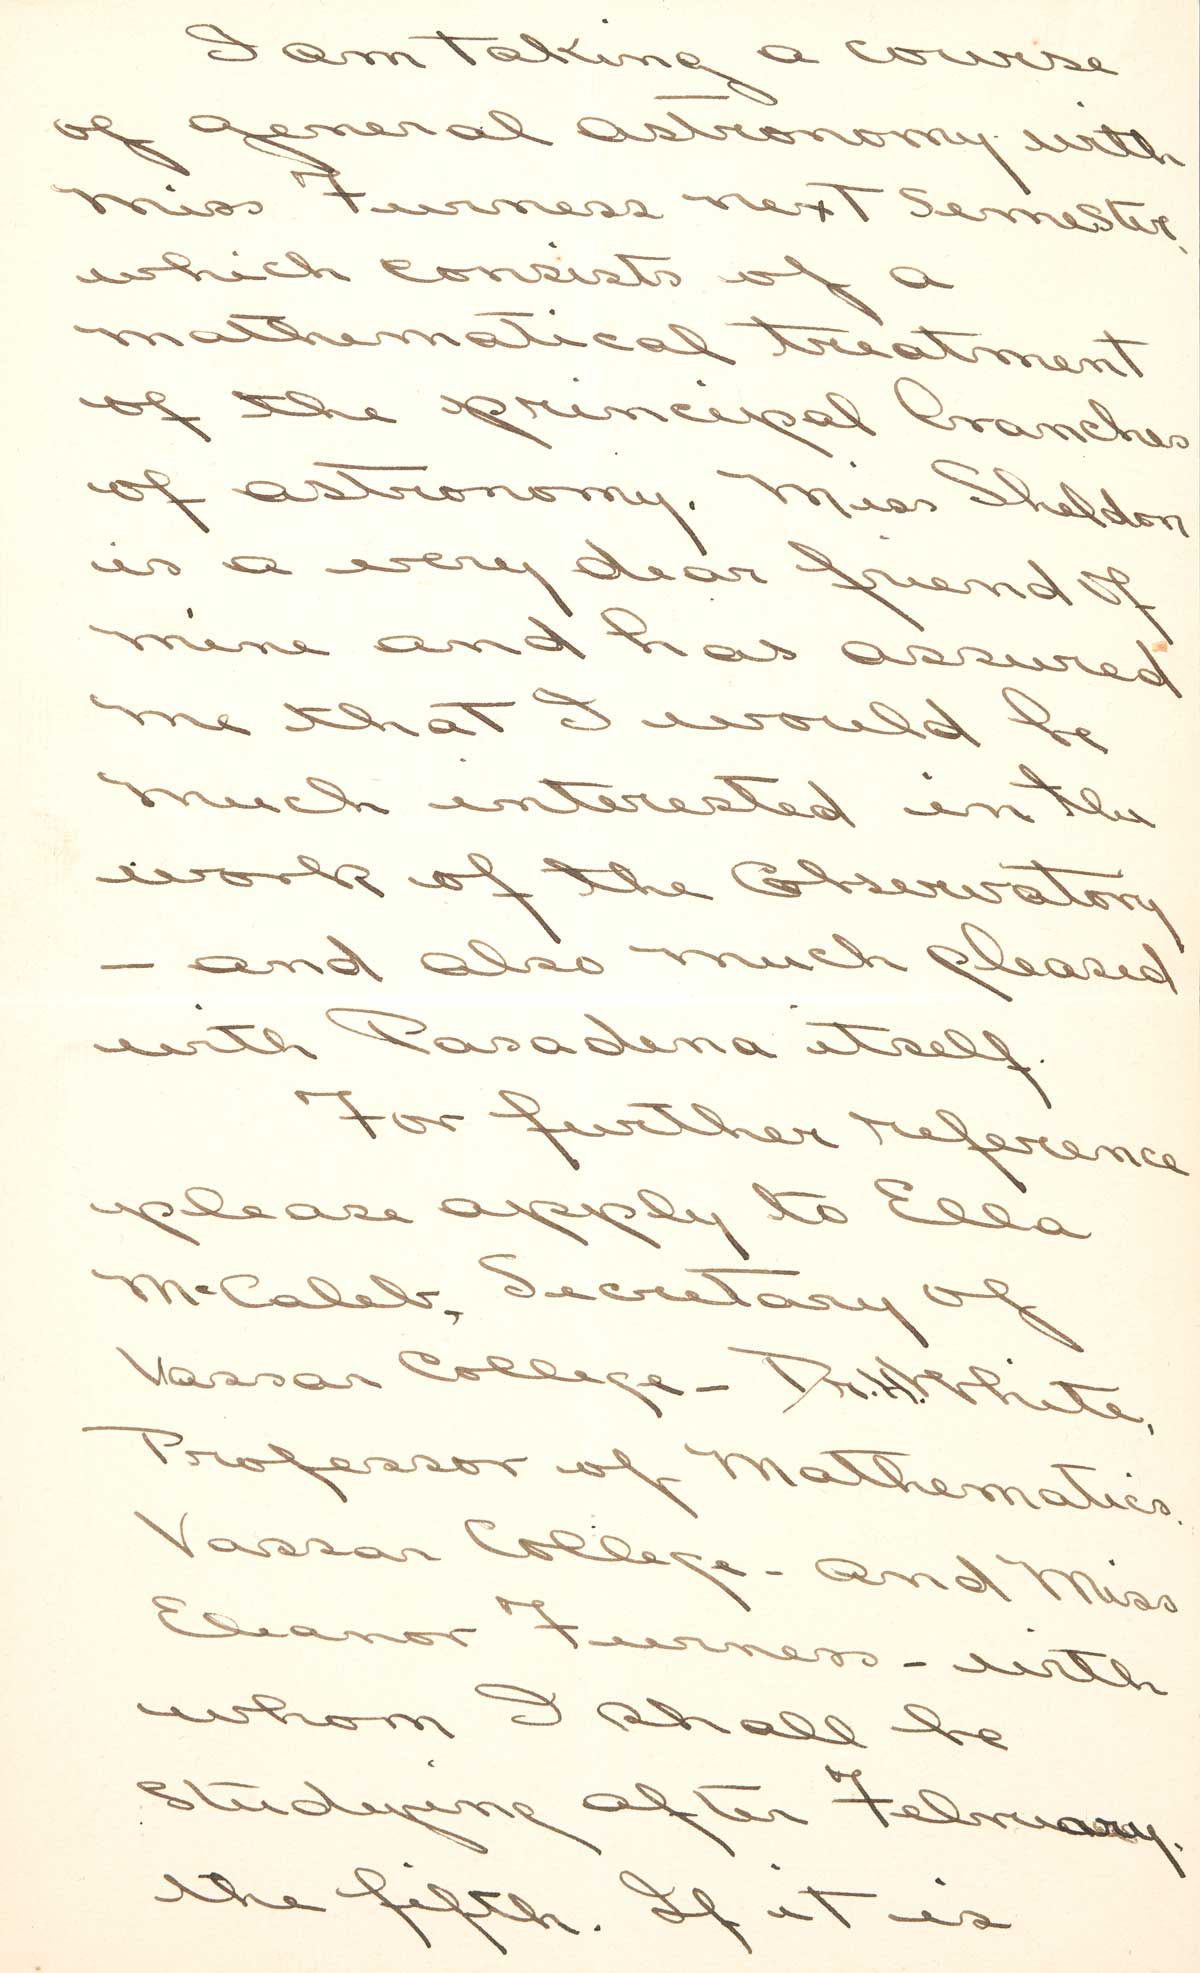 Letter to F.H. Seares of Mt. Wilson observatory from Ruth Barnett p3 | Image courtesy of the Observatories of the Carnegie Institution for Science Collection at the Huntington Library, San Marino, California